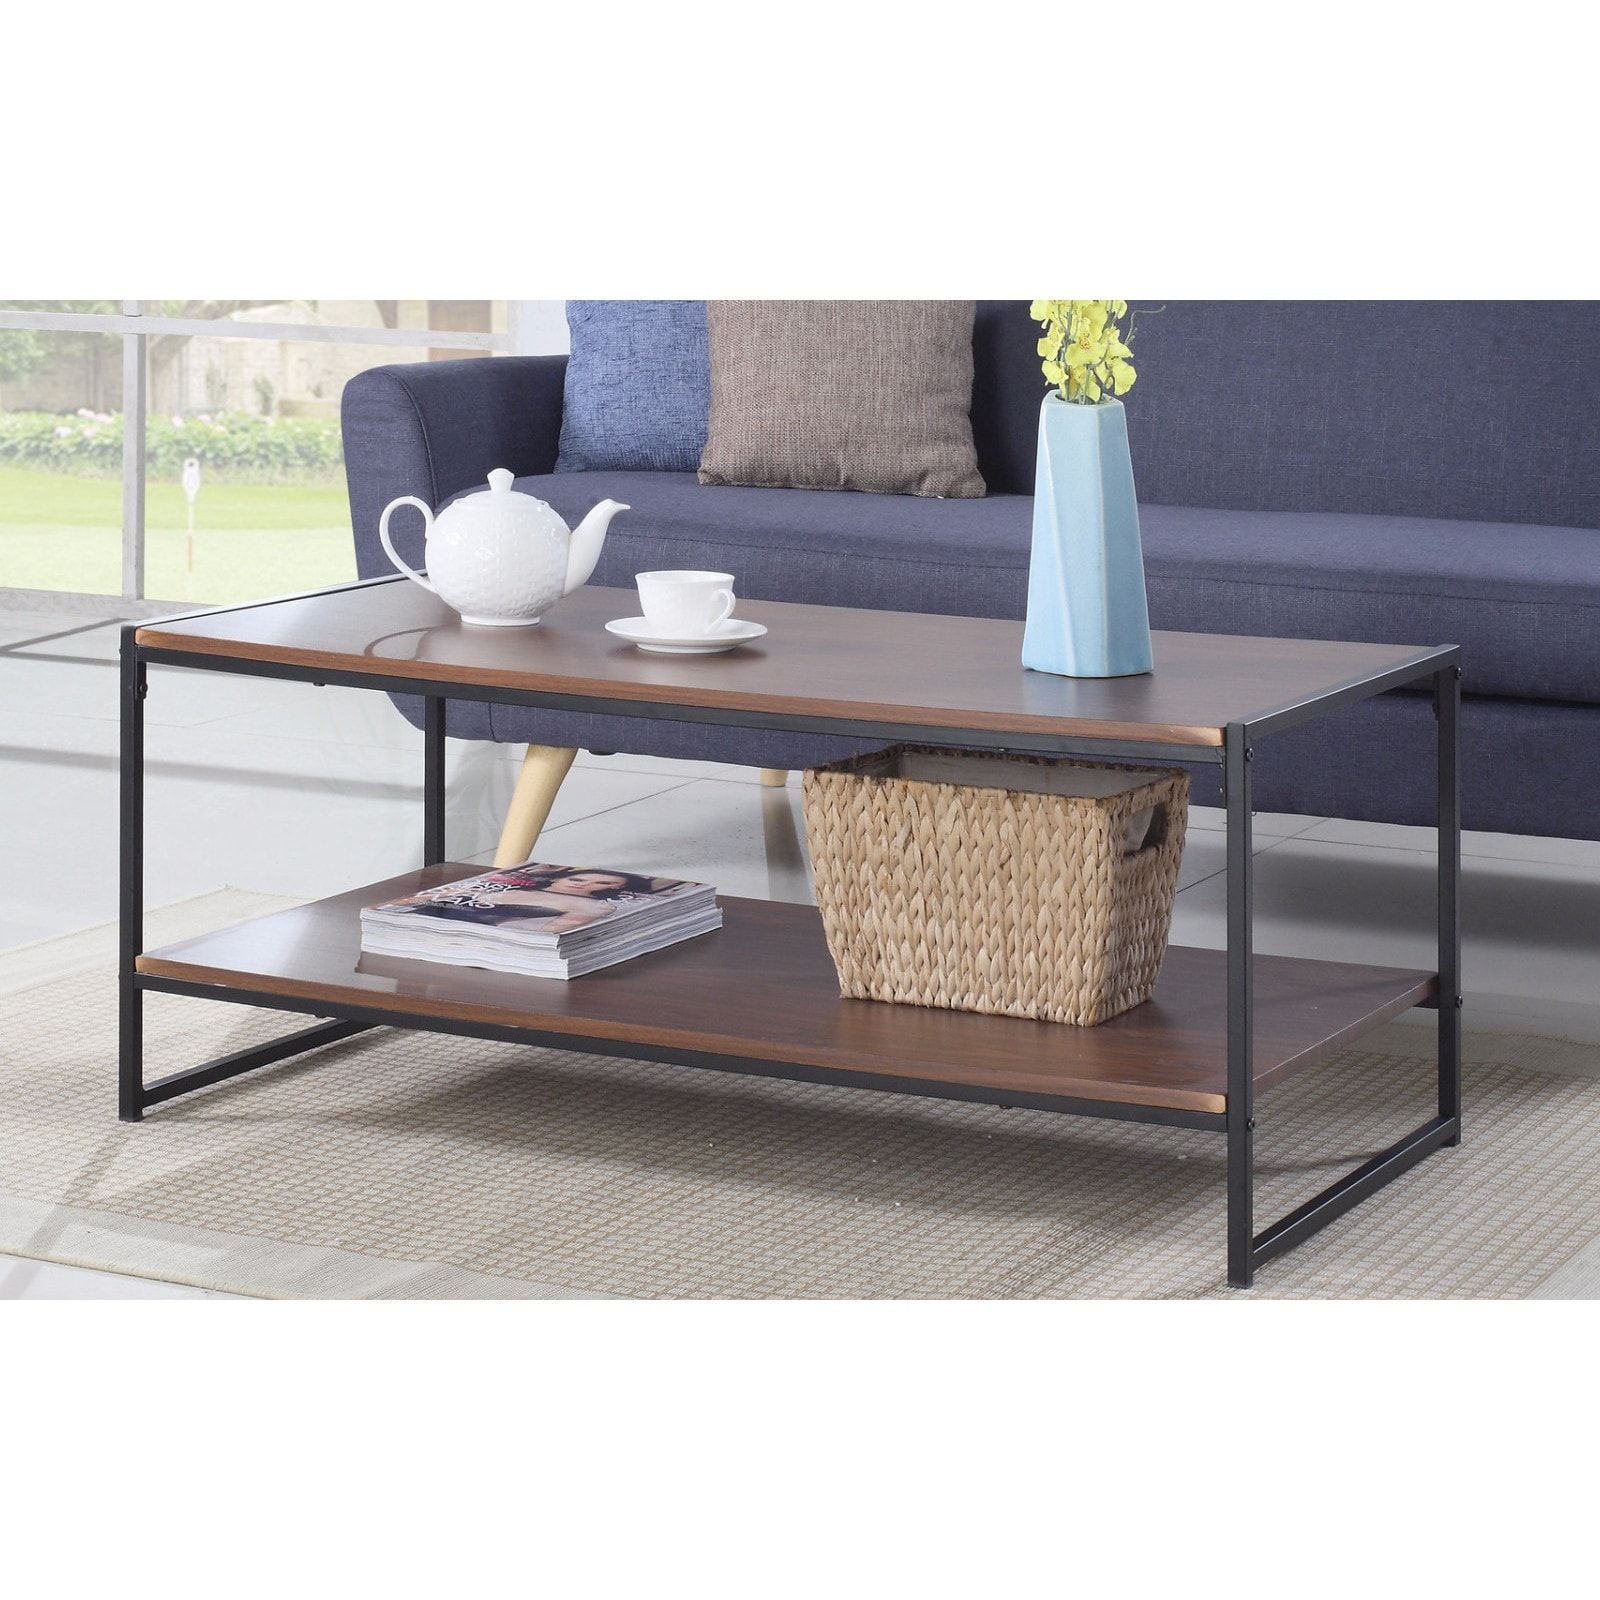 Delightful Cubicle Modern Coffee Table | Overstock.com Shopping   The Best Deals On  Coffee,